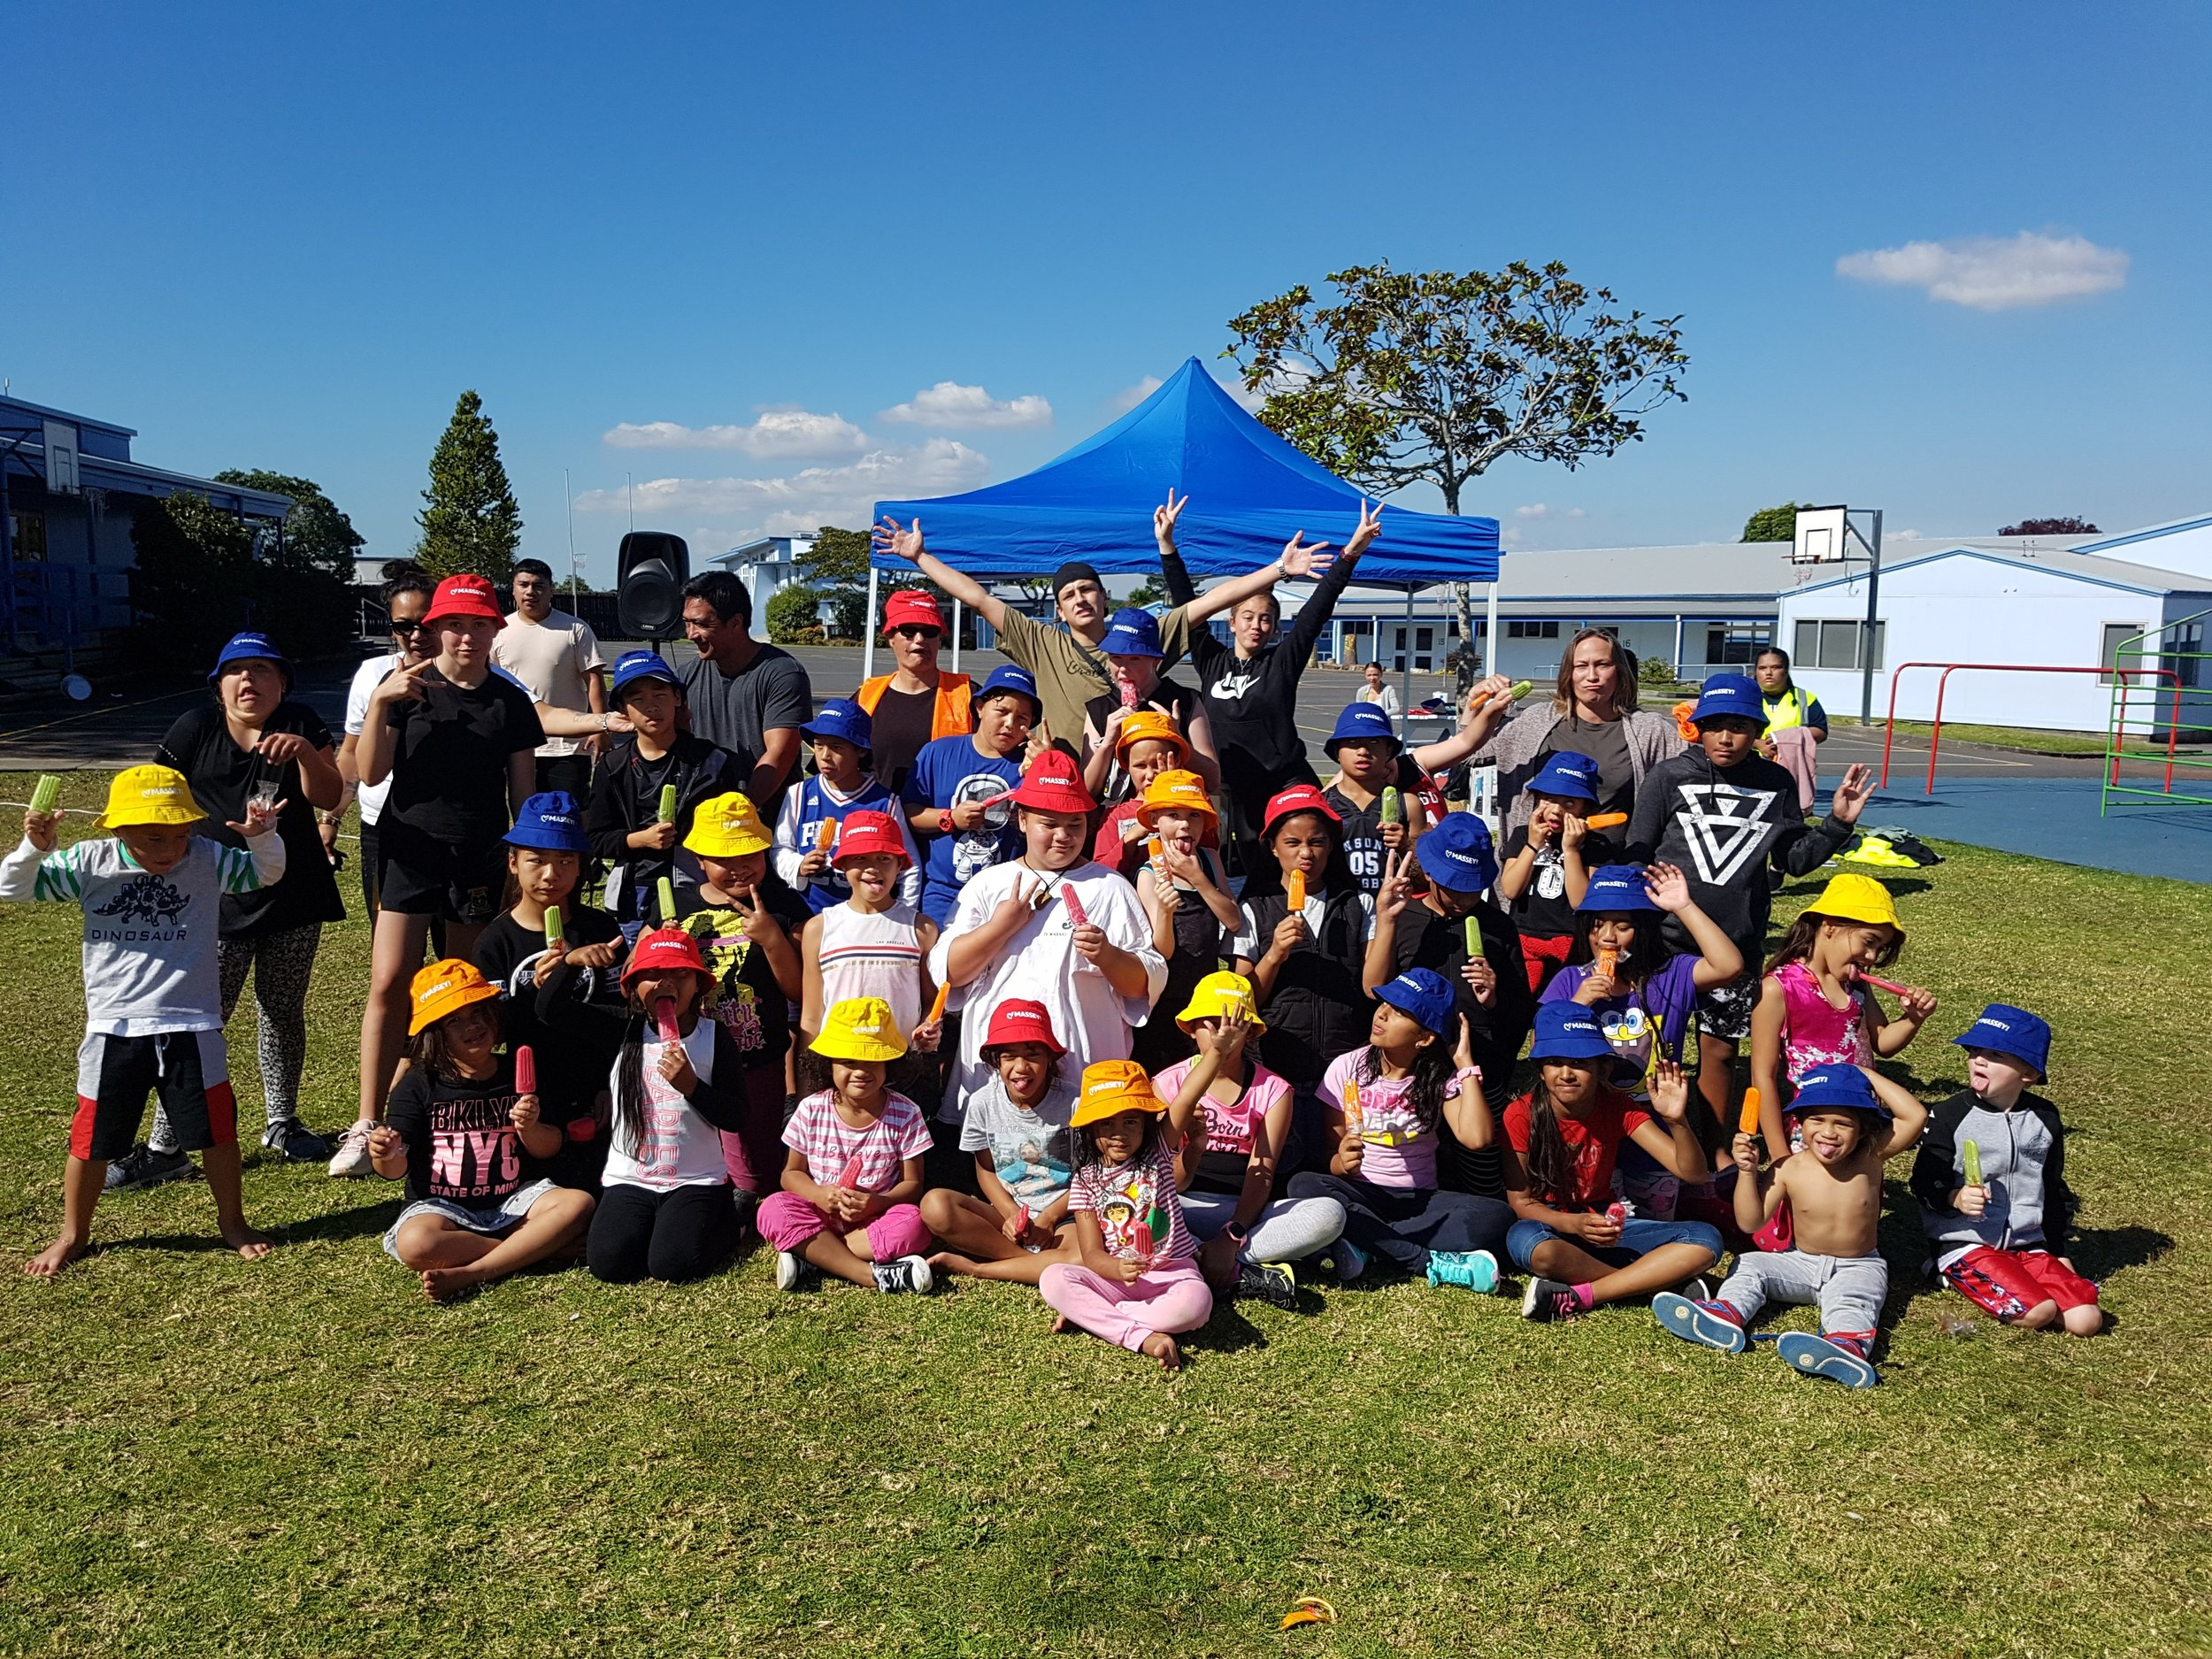 - Sports day done and dusted at Manutewhau Hub.